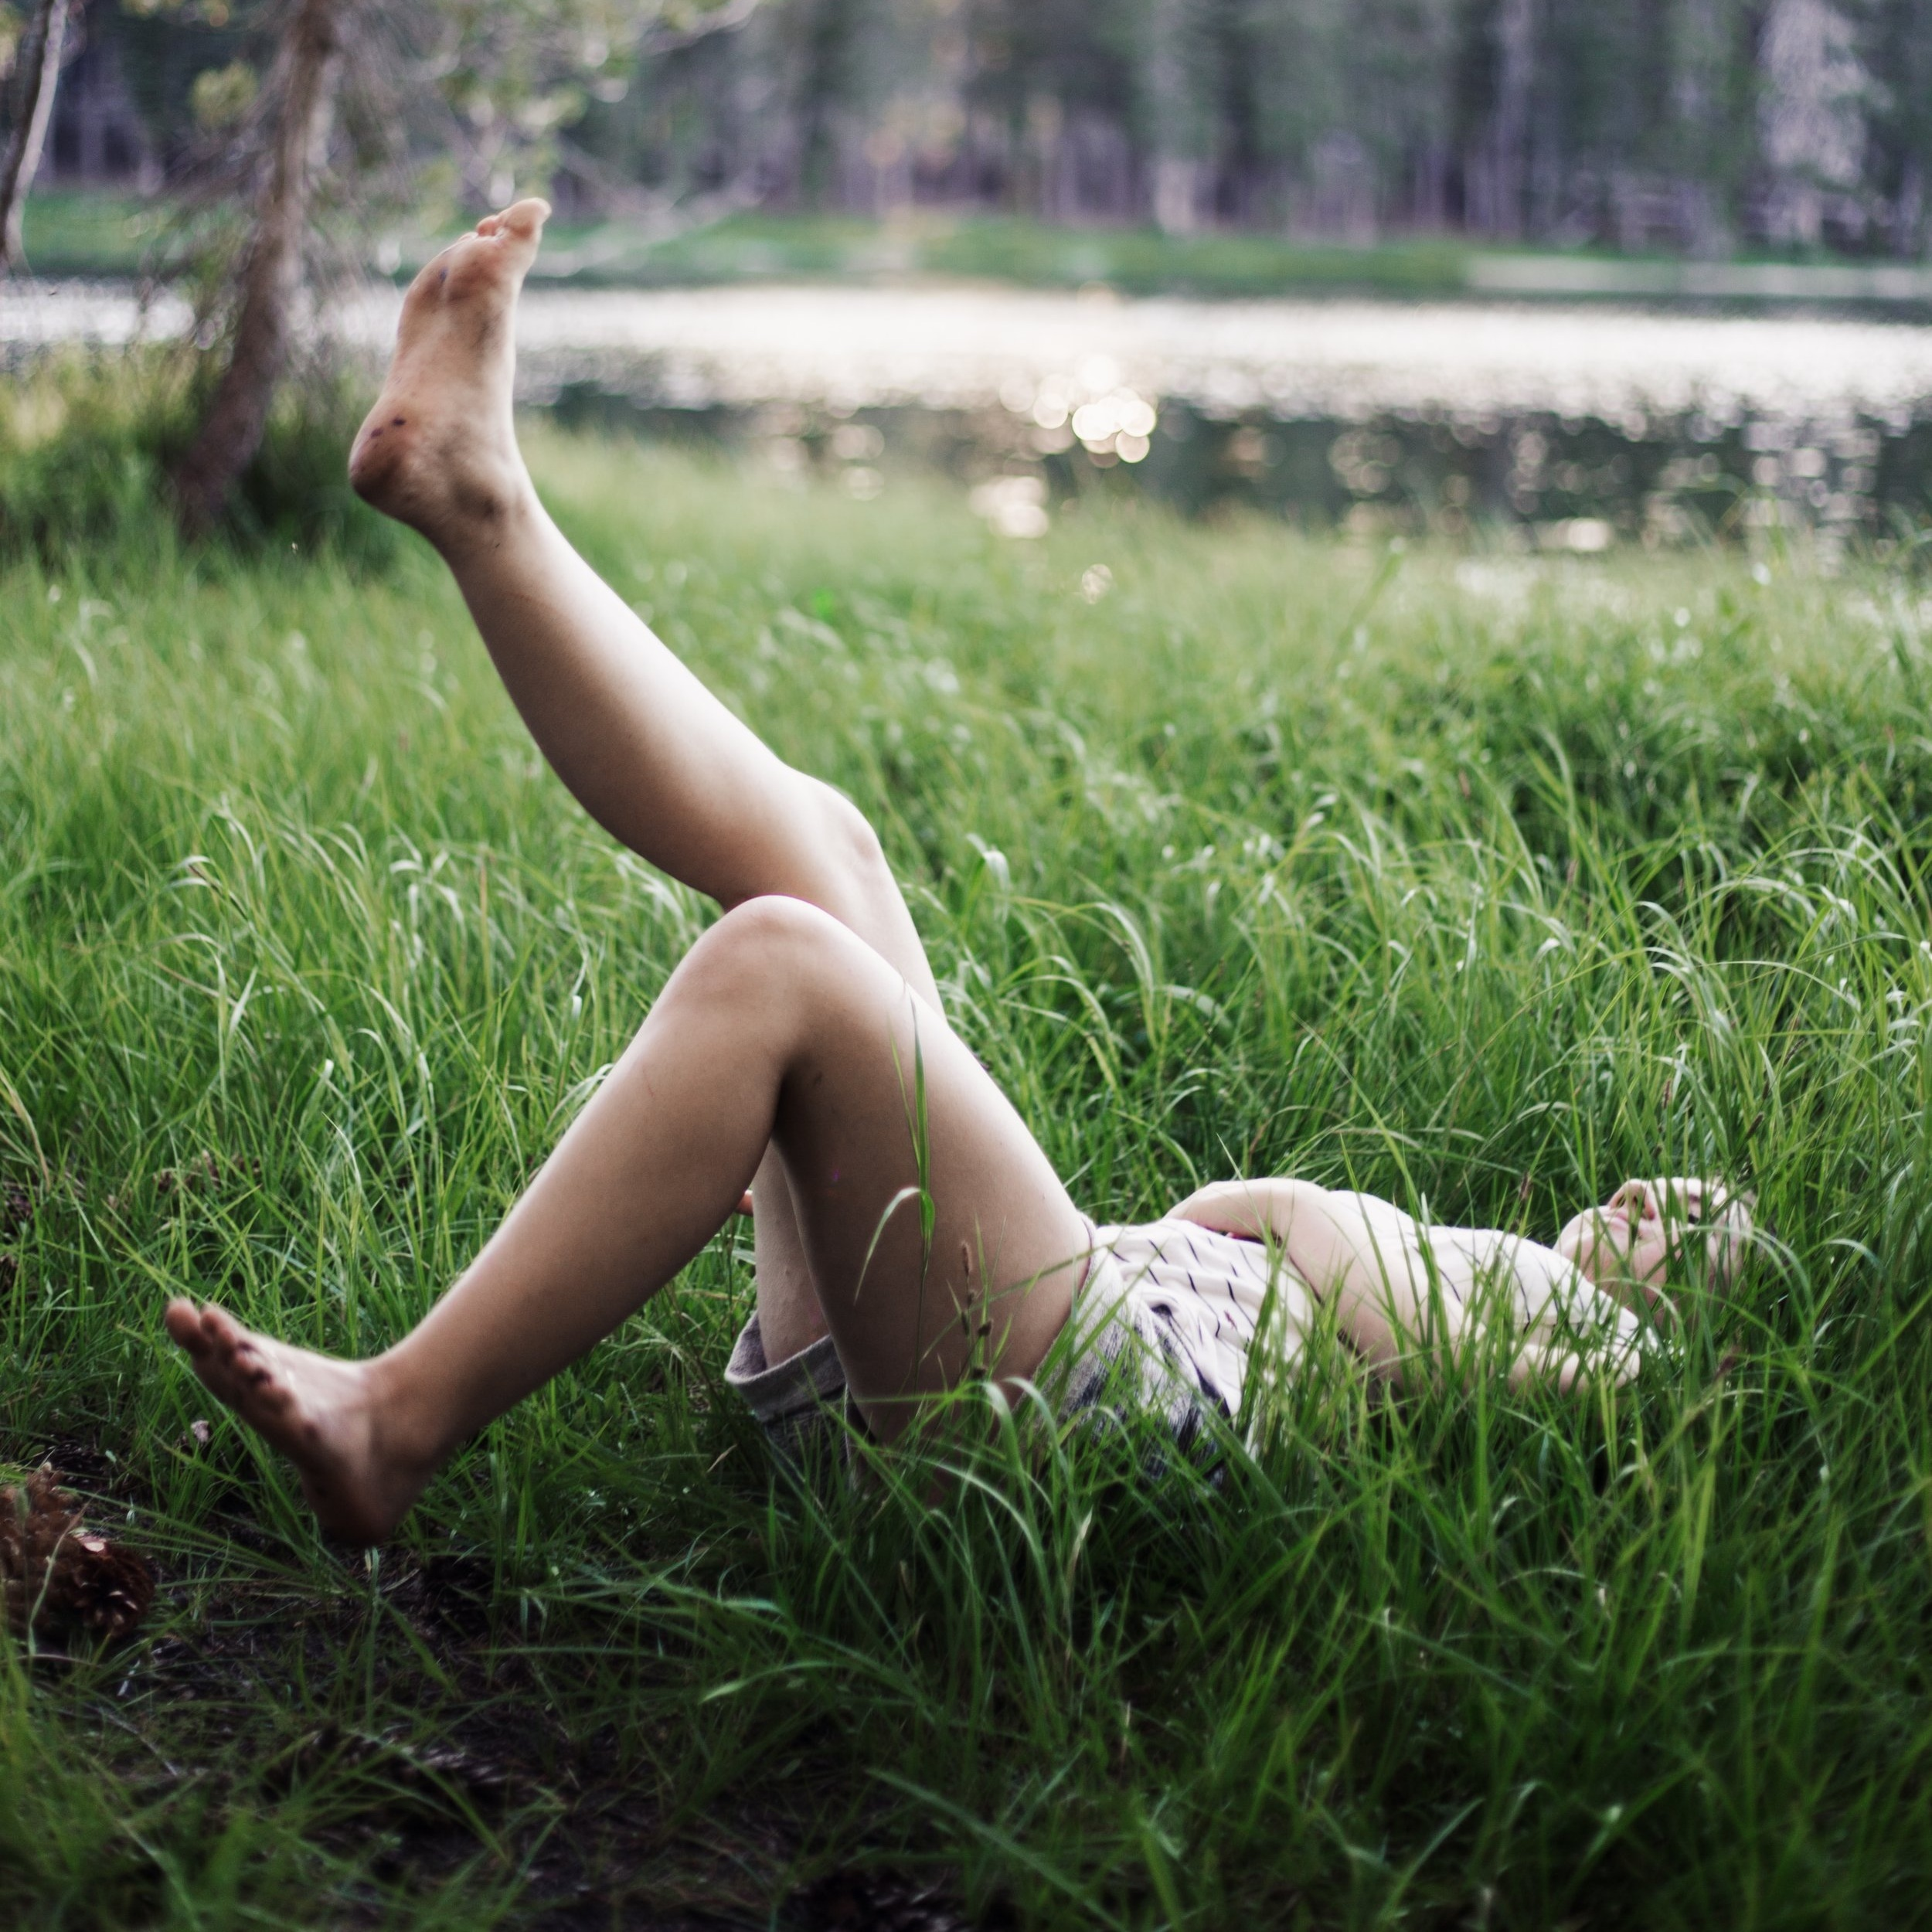 woman+lying+in+the+grass+with+one+foot+in+the+air+looking+relaxed